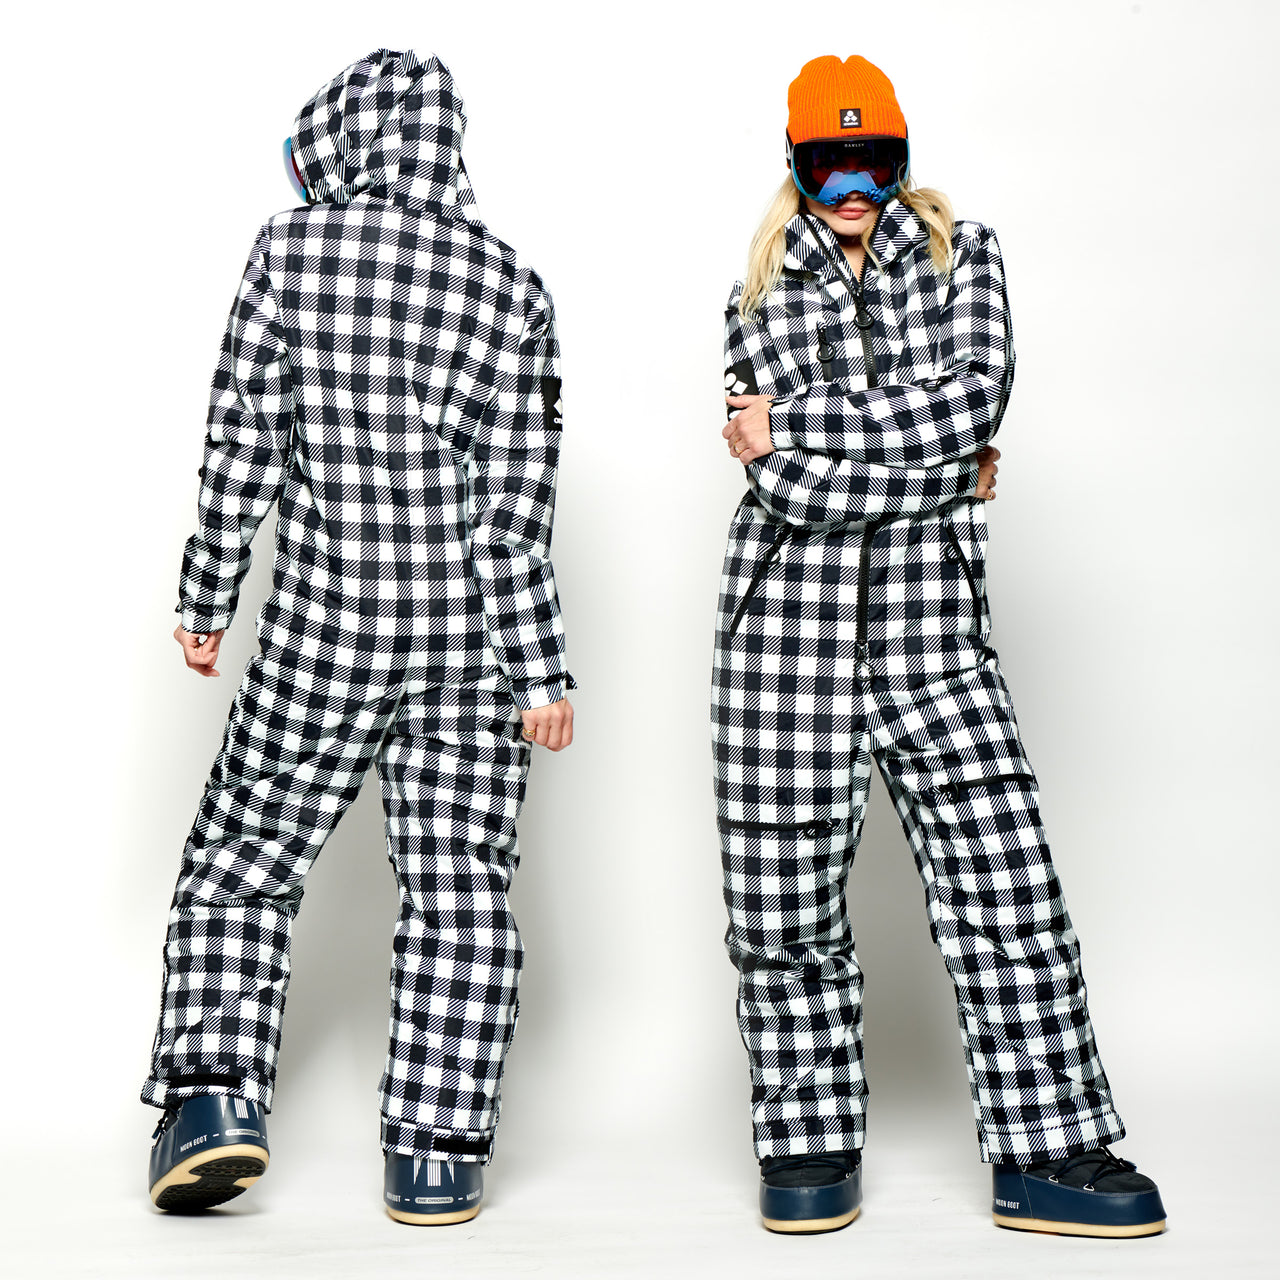 Original Pro - Plaid (Unisex Fit)